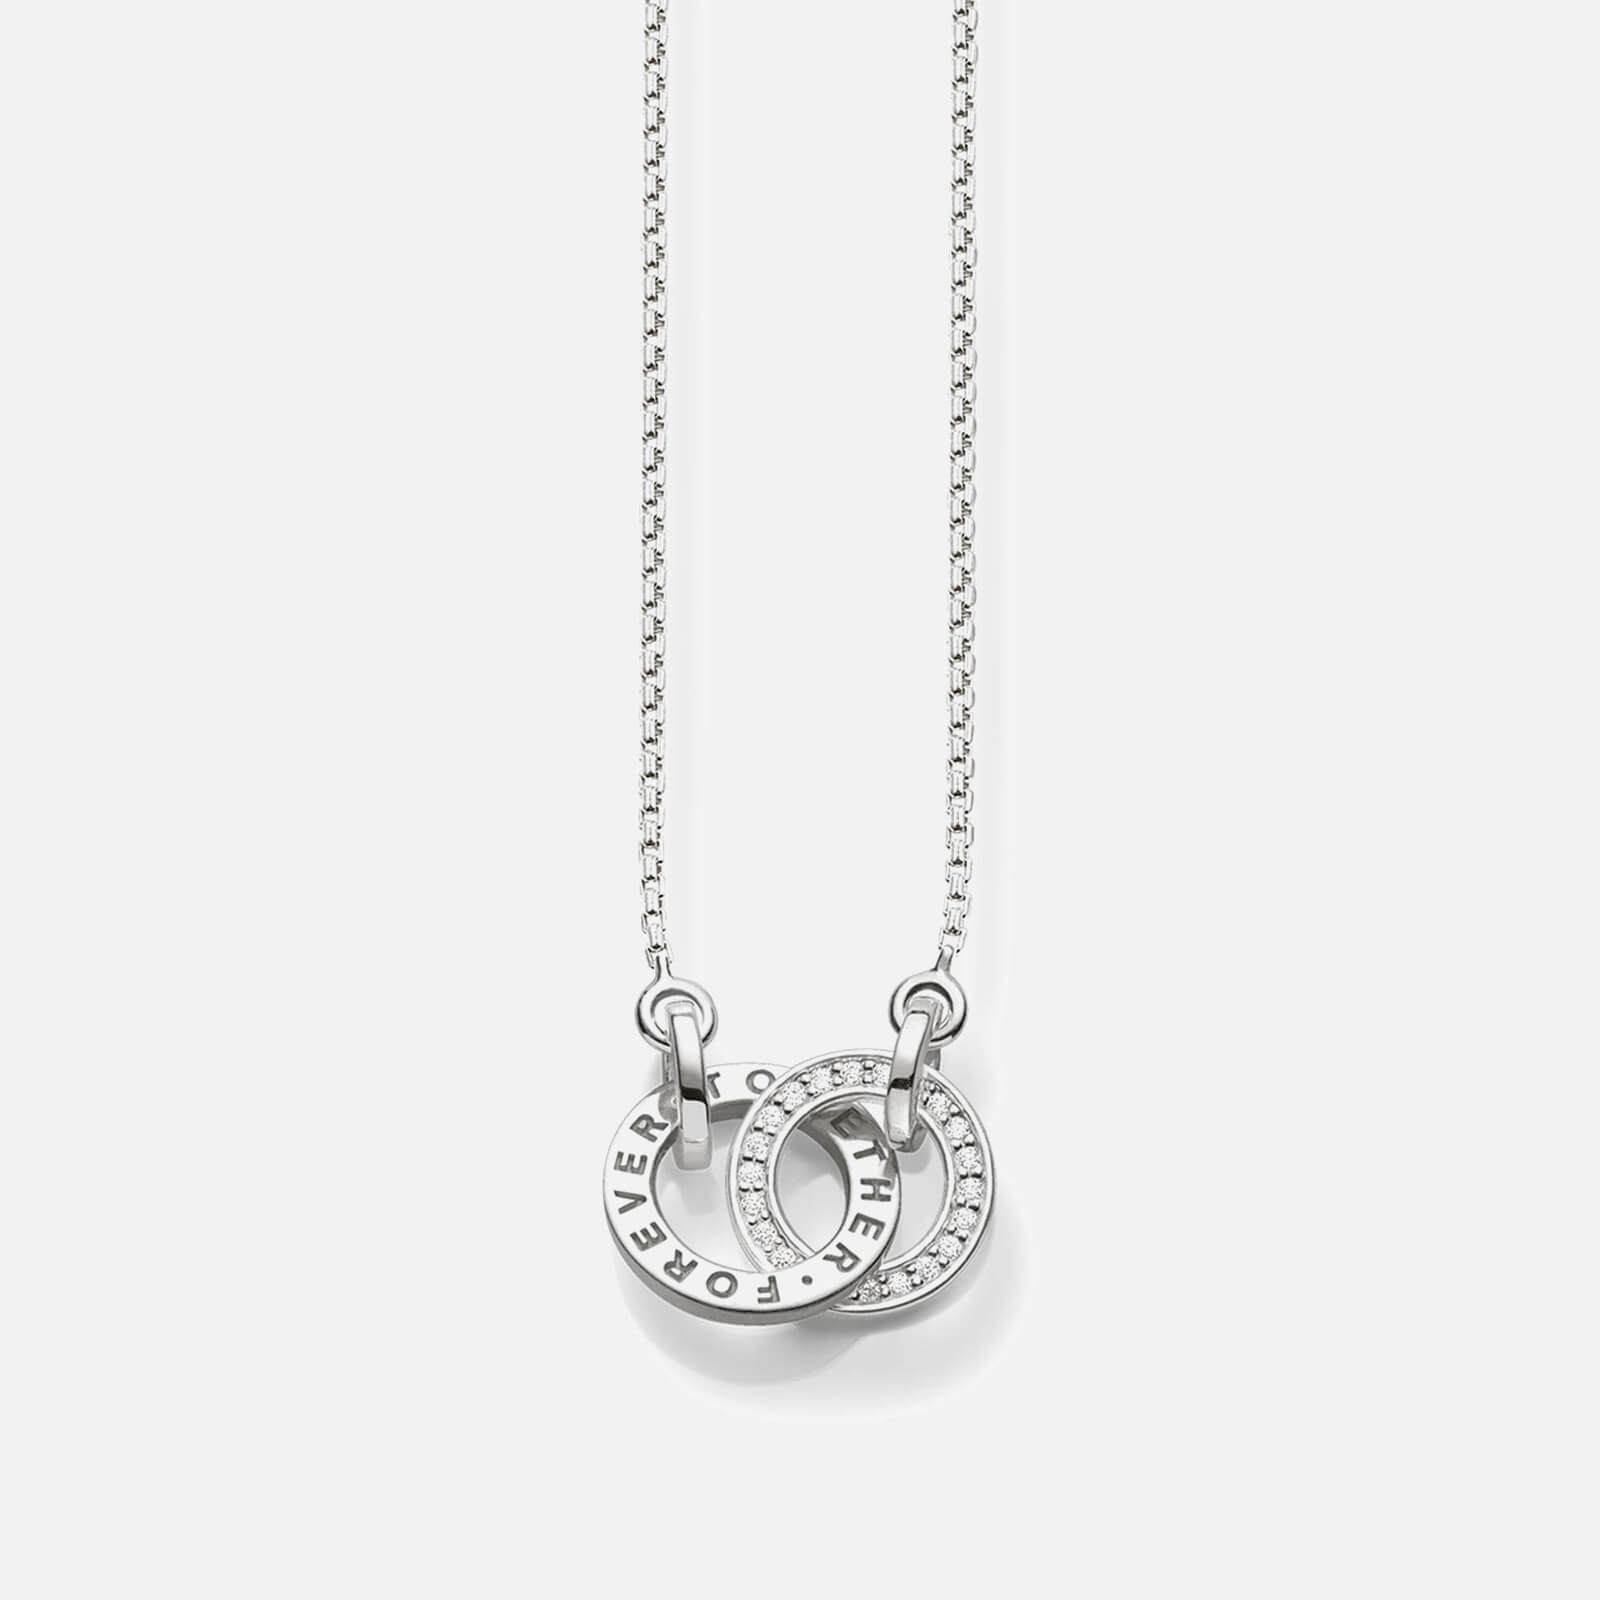 Thomas Sabo Women's Forever Together Necklace - Silver